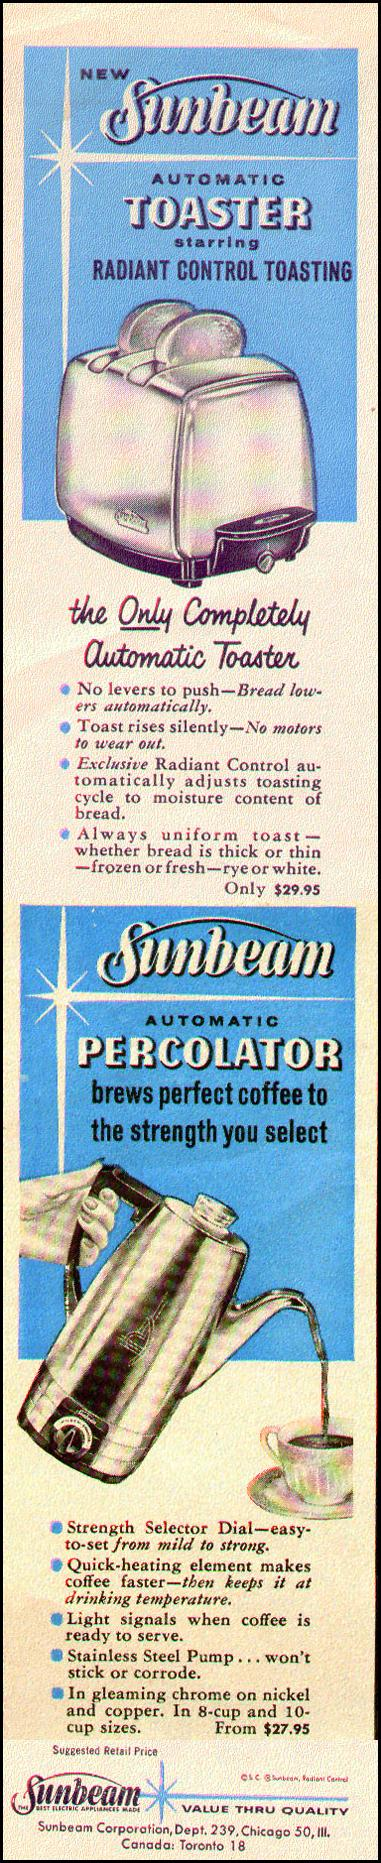 AUTOMATIC TOASTER & AUTOMATIC PERCOLATOR LOOK 09/16/1958 p. 4